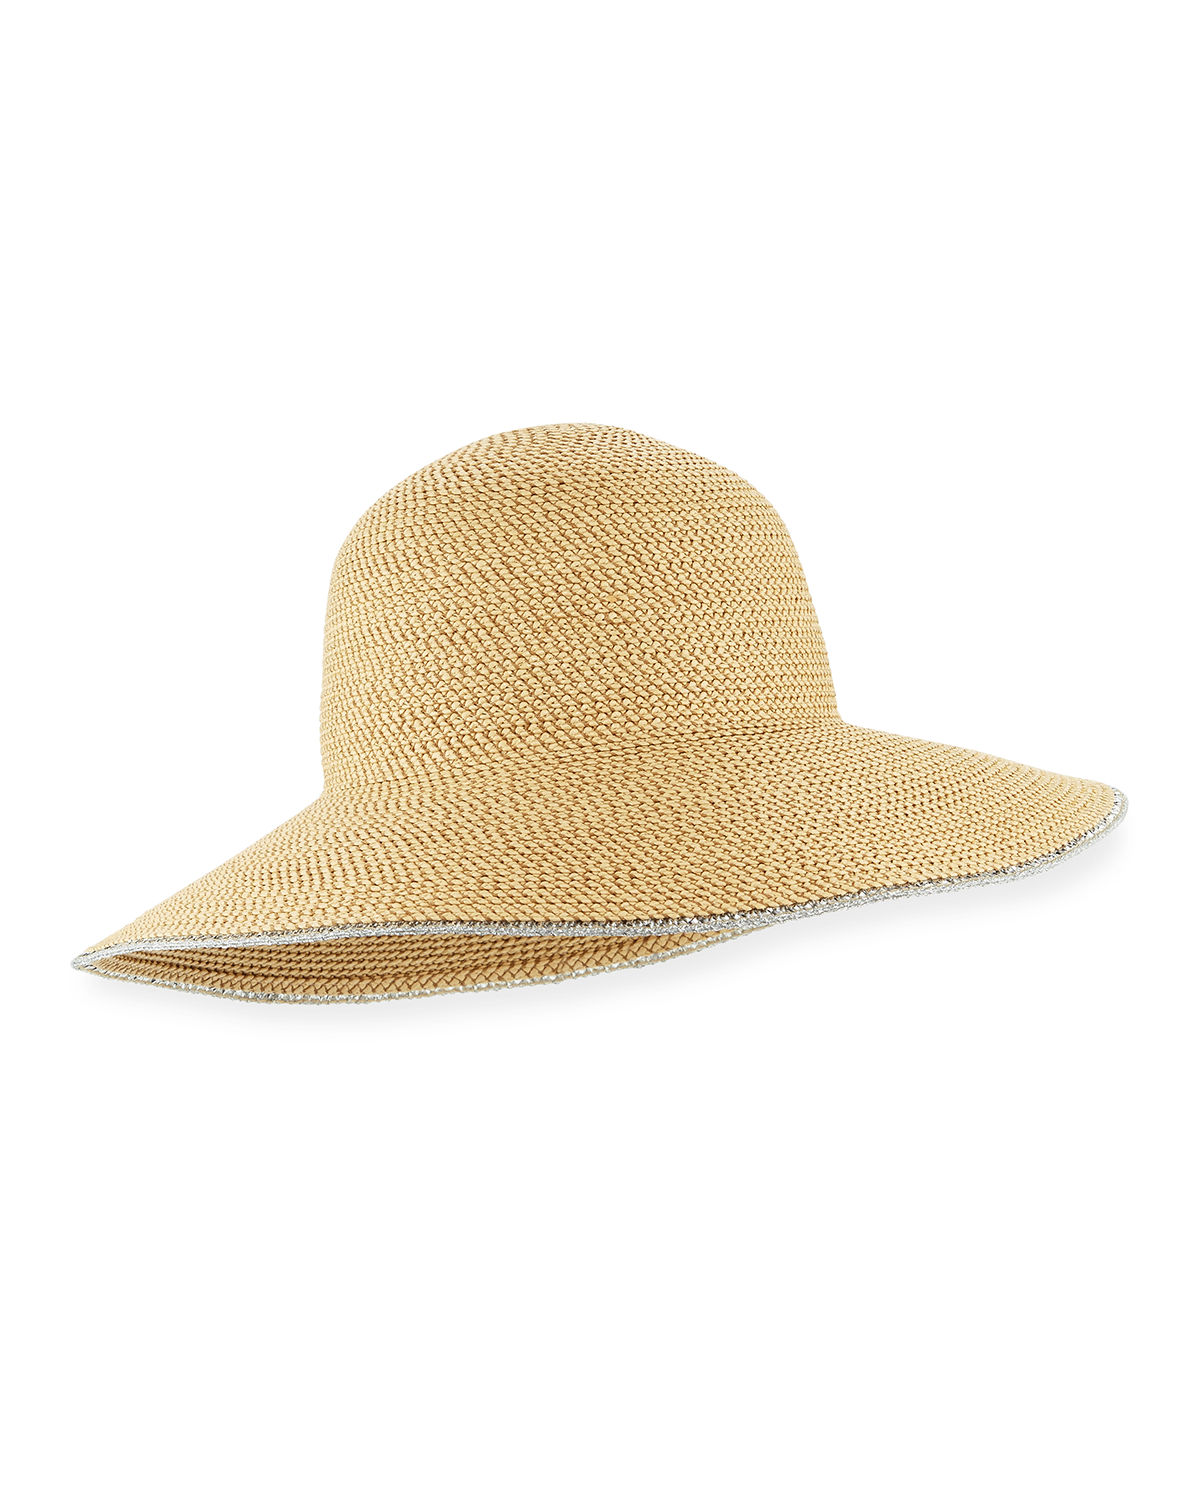 1ac90c6edbf Eric Javits Hampton Squishee Packable Sun Hat